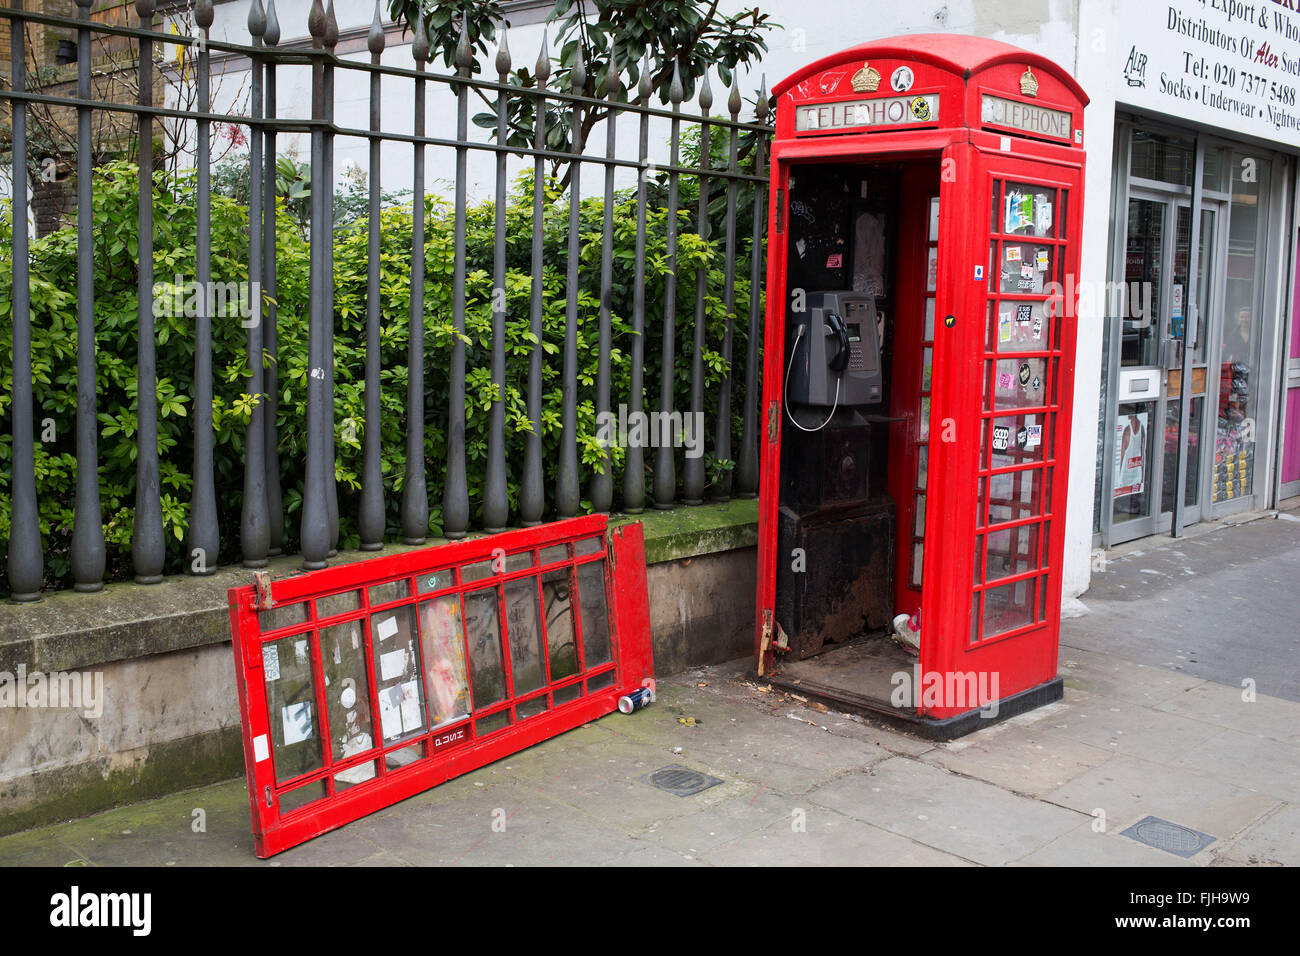 Broken traditional red telephone call box. London, UK. Rarely used nowadays, these old red phone boxes are often - Stock Image